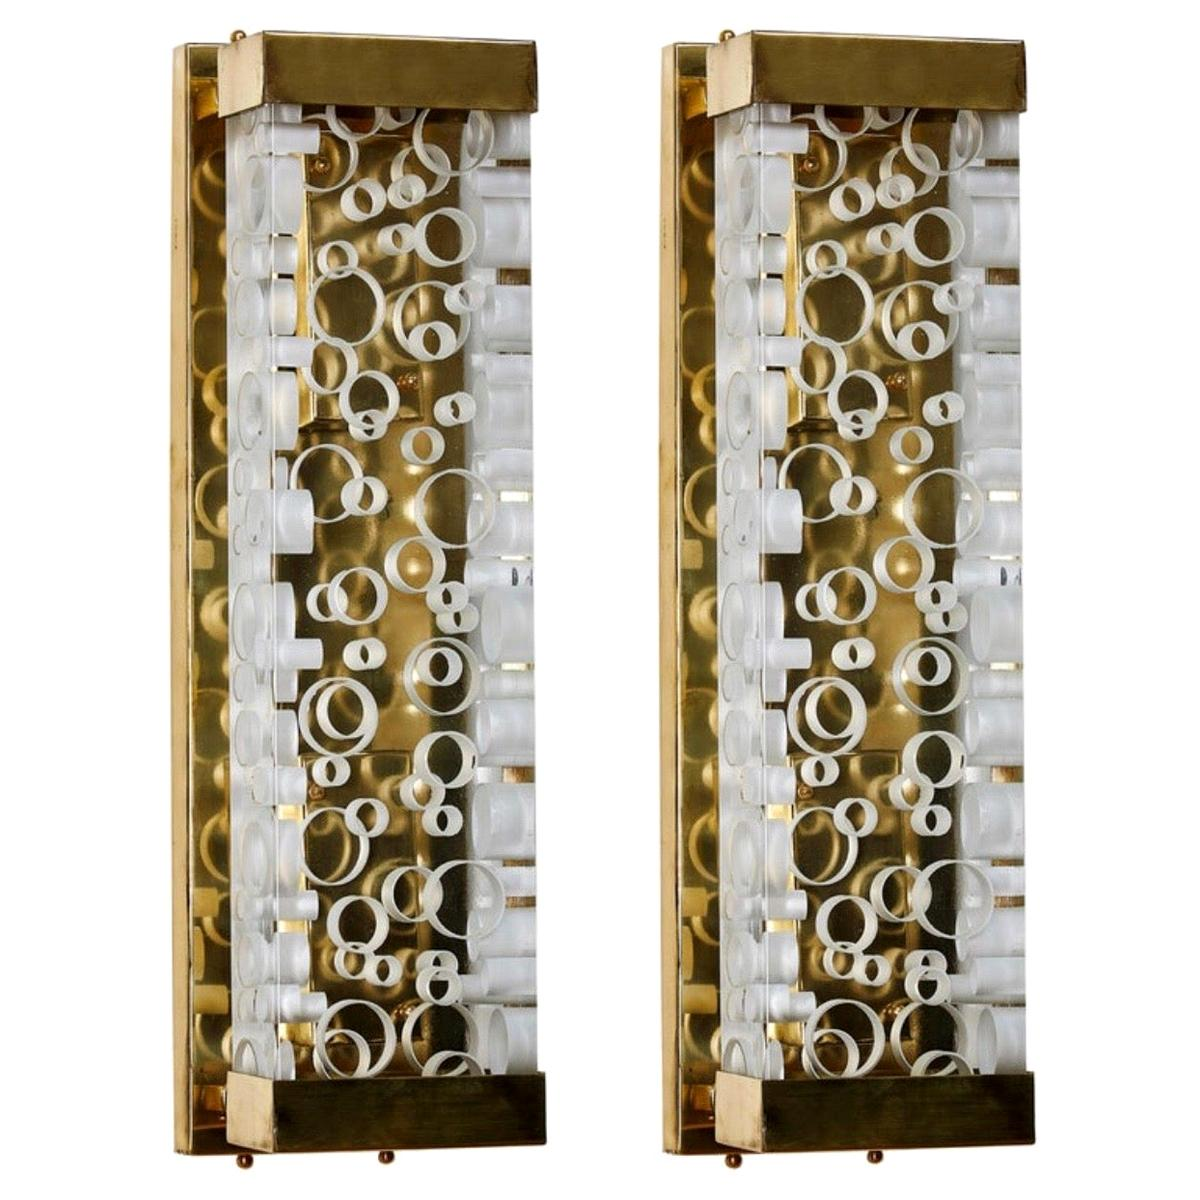 Pair of Italian Thick Murano Glass and Brass Sconces